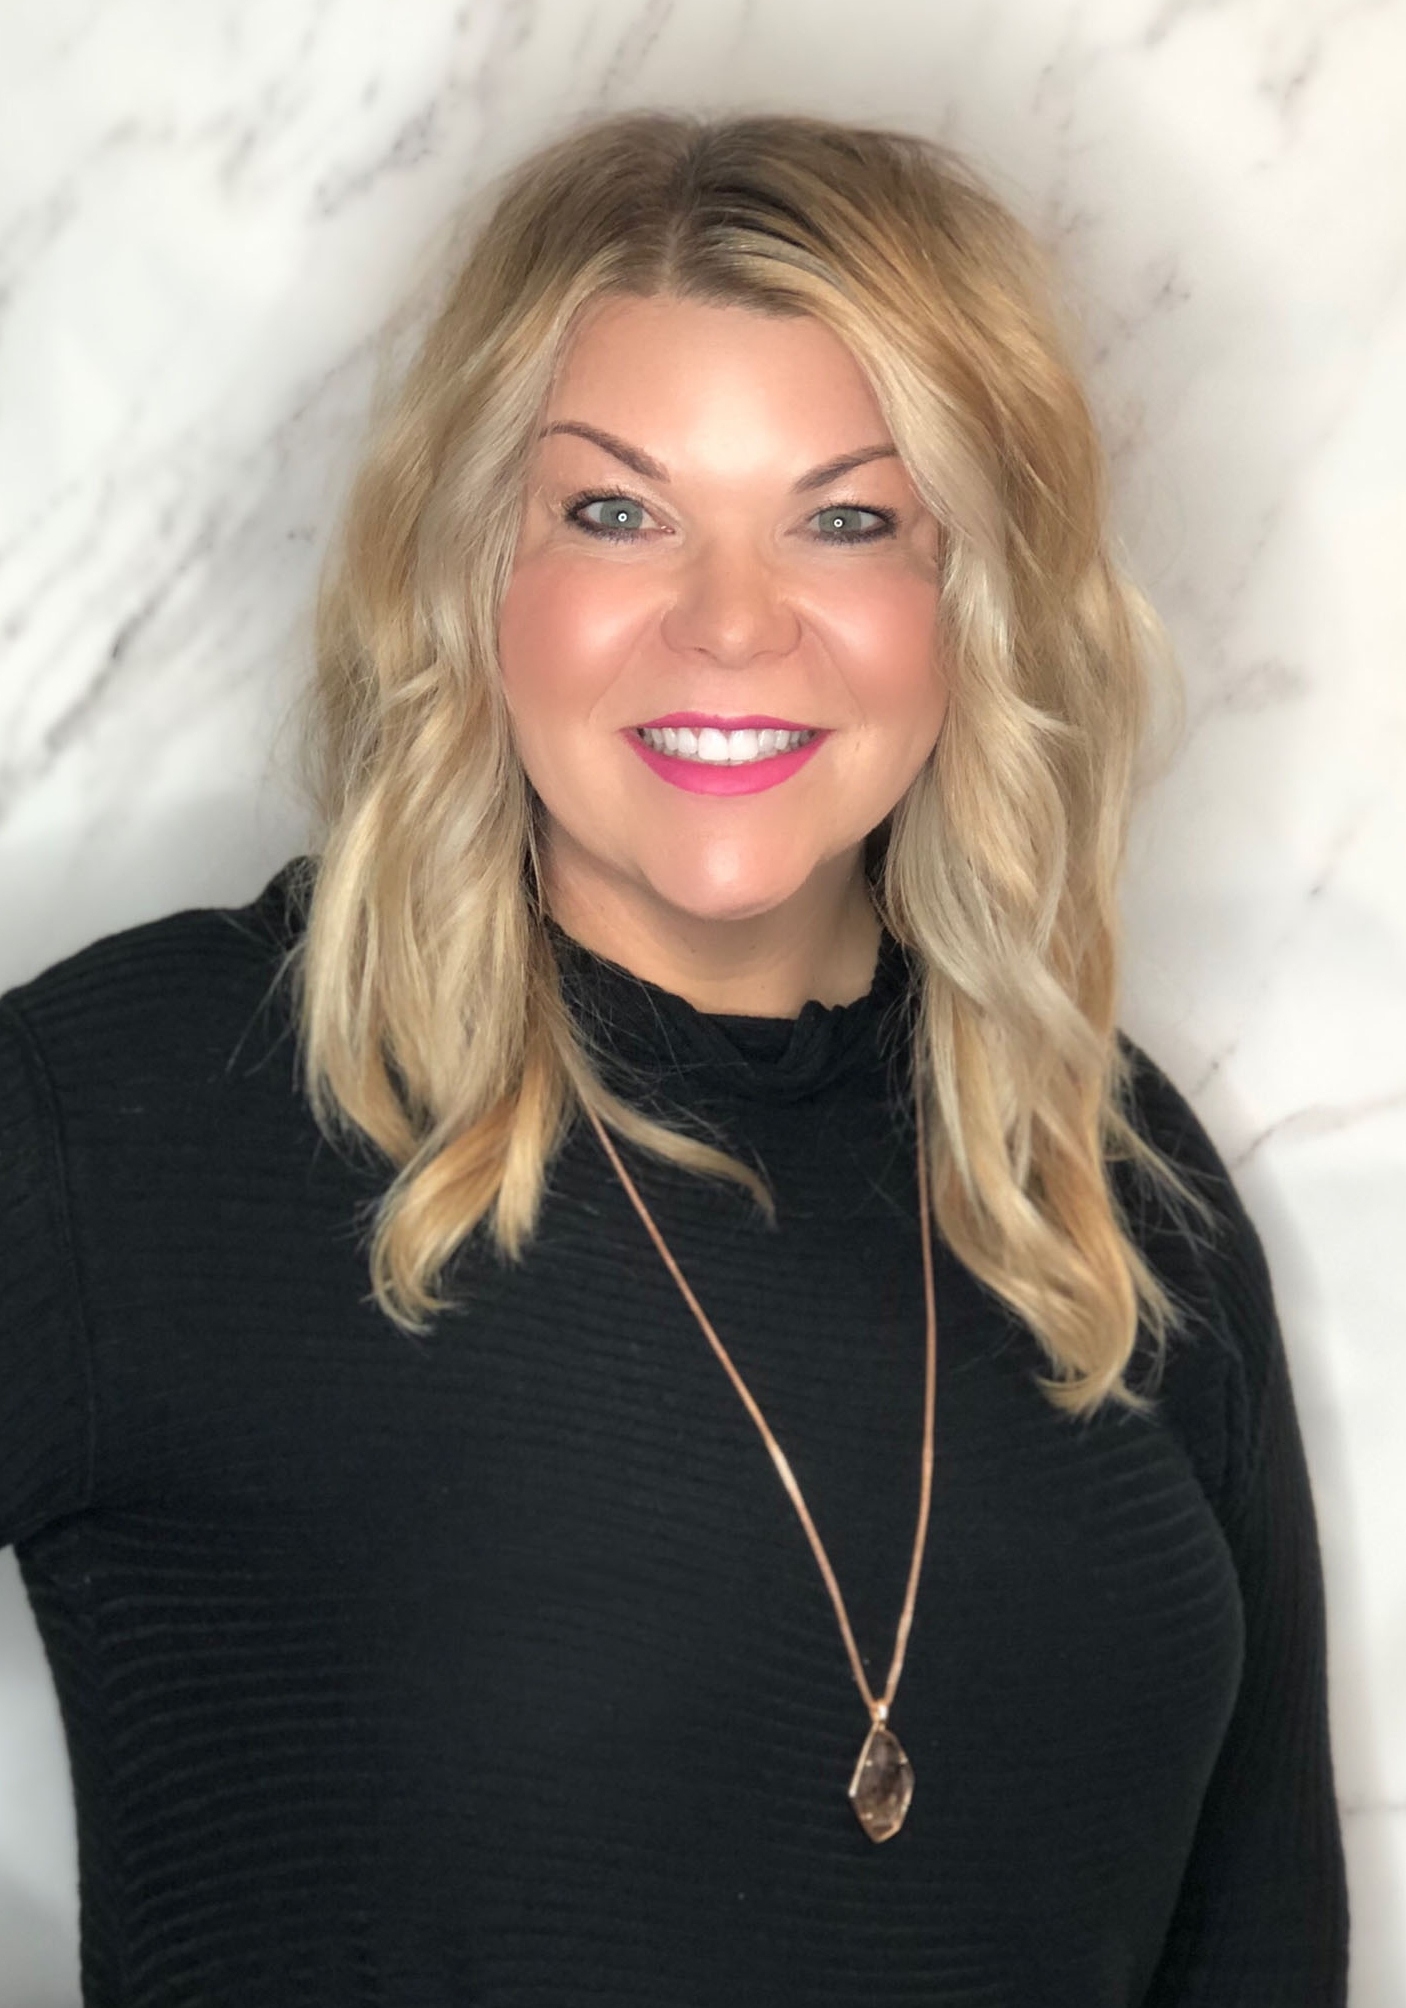 Jesi loves to create masterpieces with hair. Painting hair and carving a beautiful fringe are her specialties. She's always here to listen to specific needs and educate you on how to look your best. Let her polish your look to perfection.